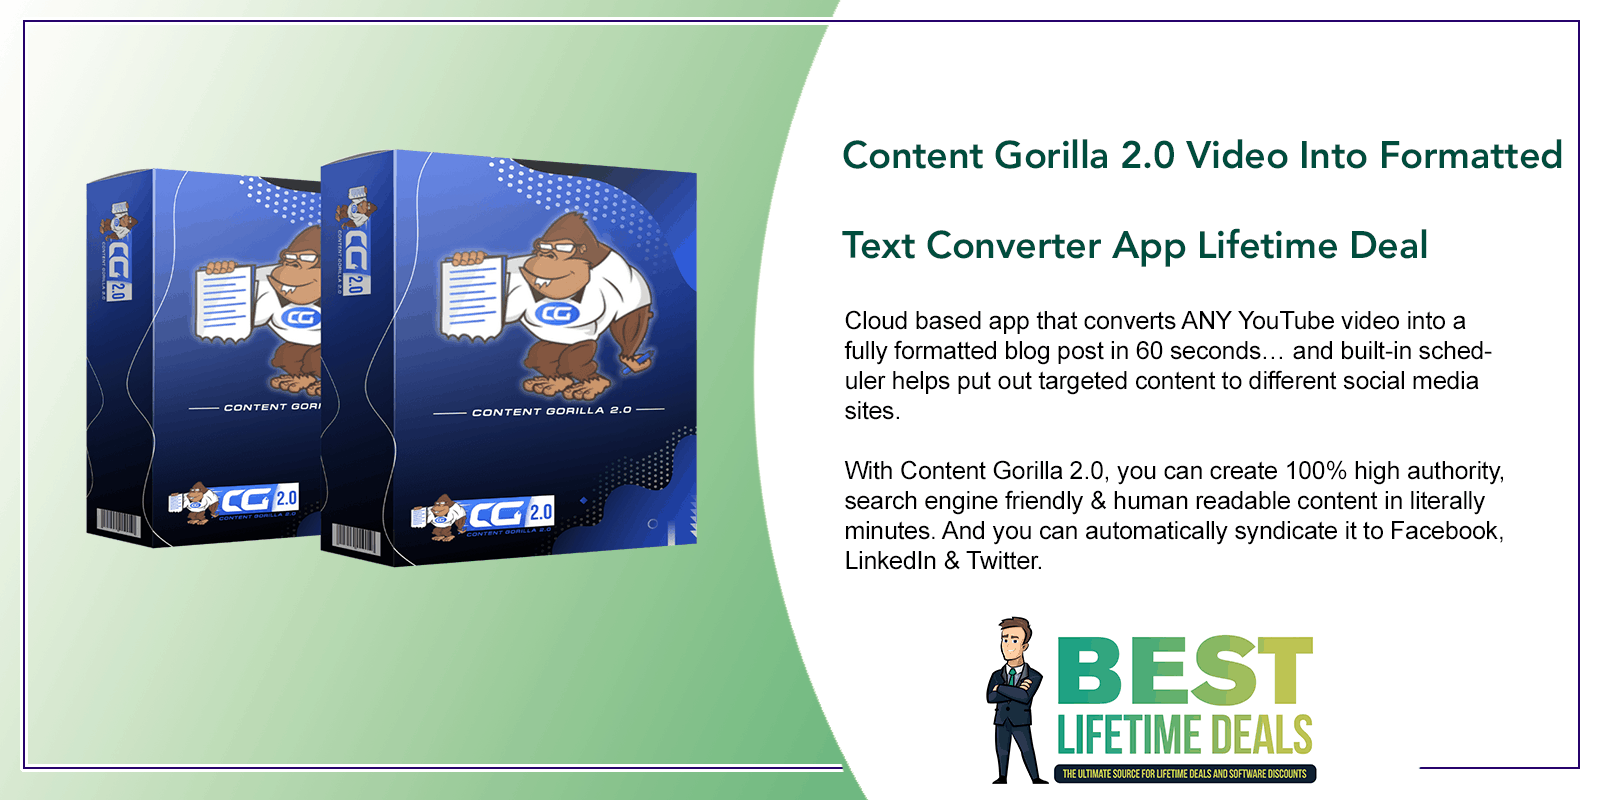 Content Gorilla 2.0 Video Into Formatted Text Converter App Featured Image